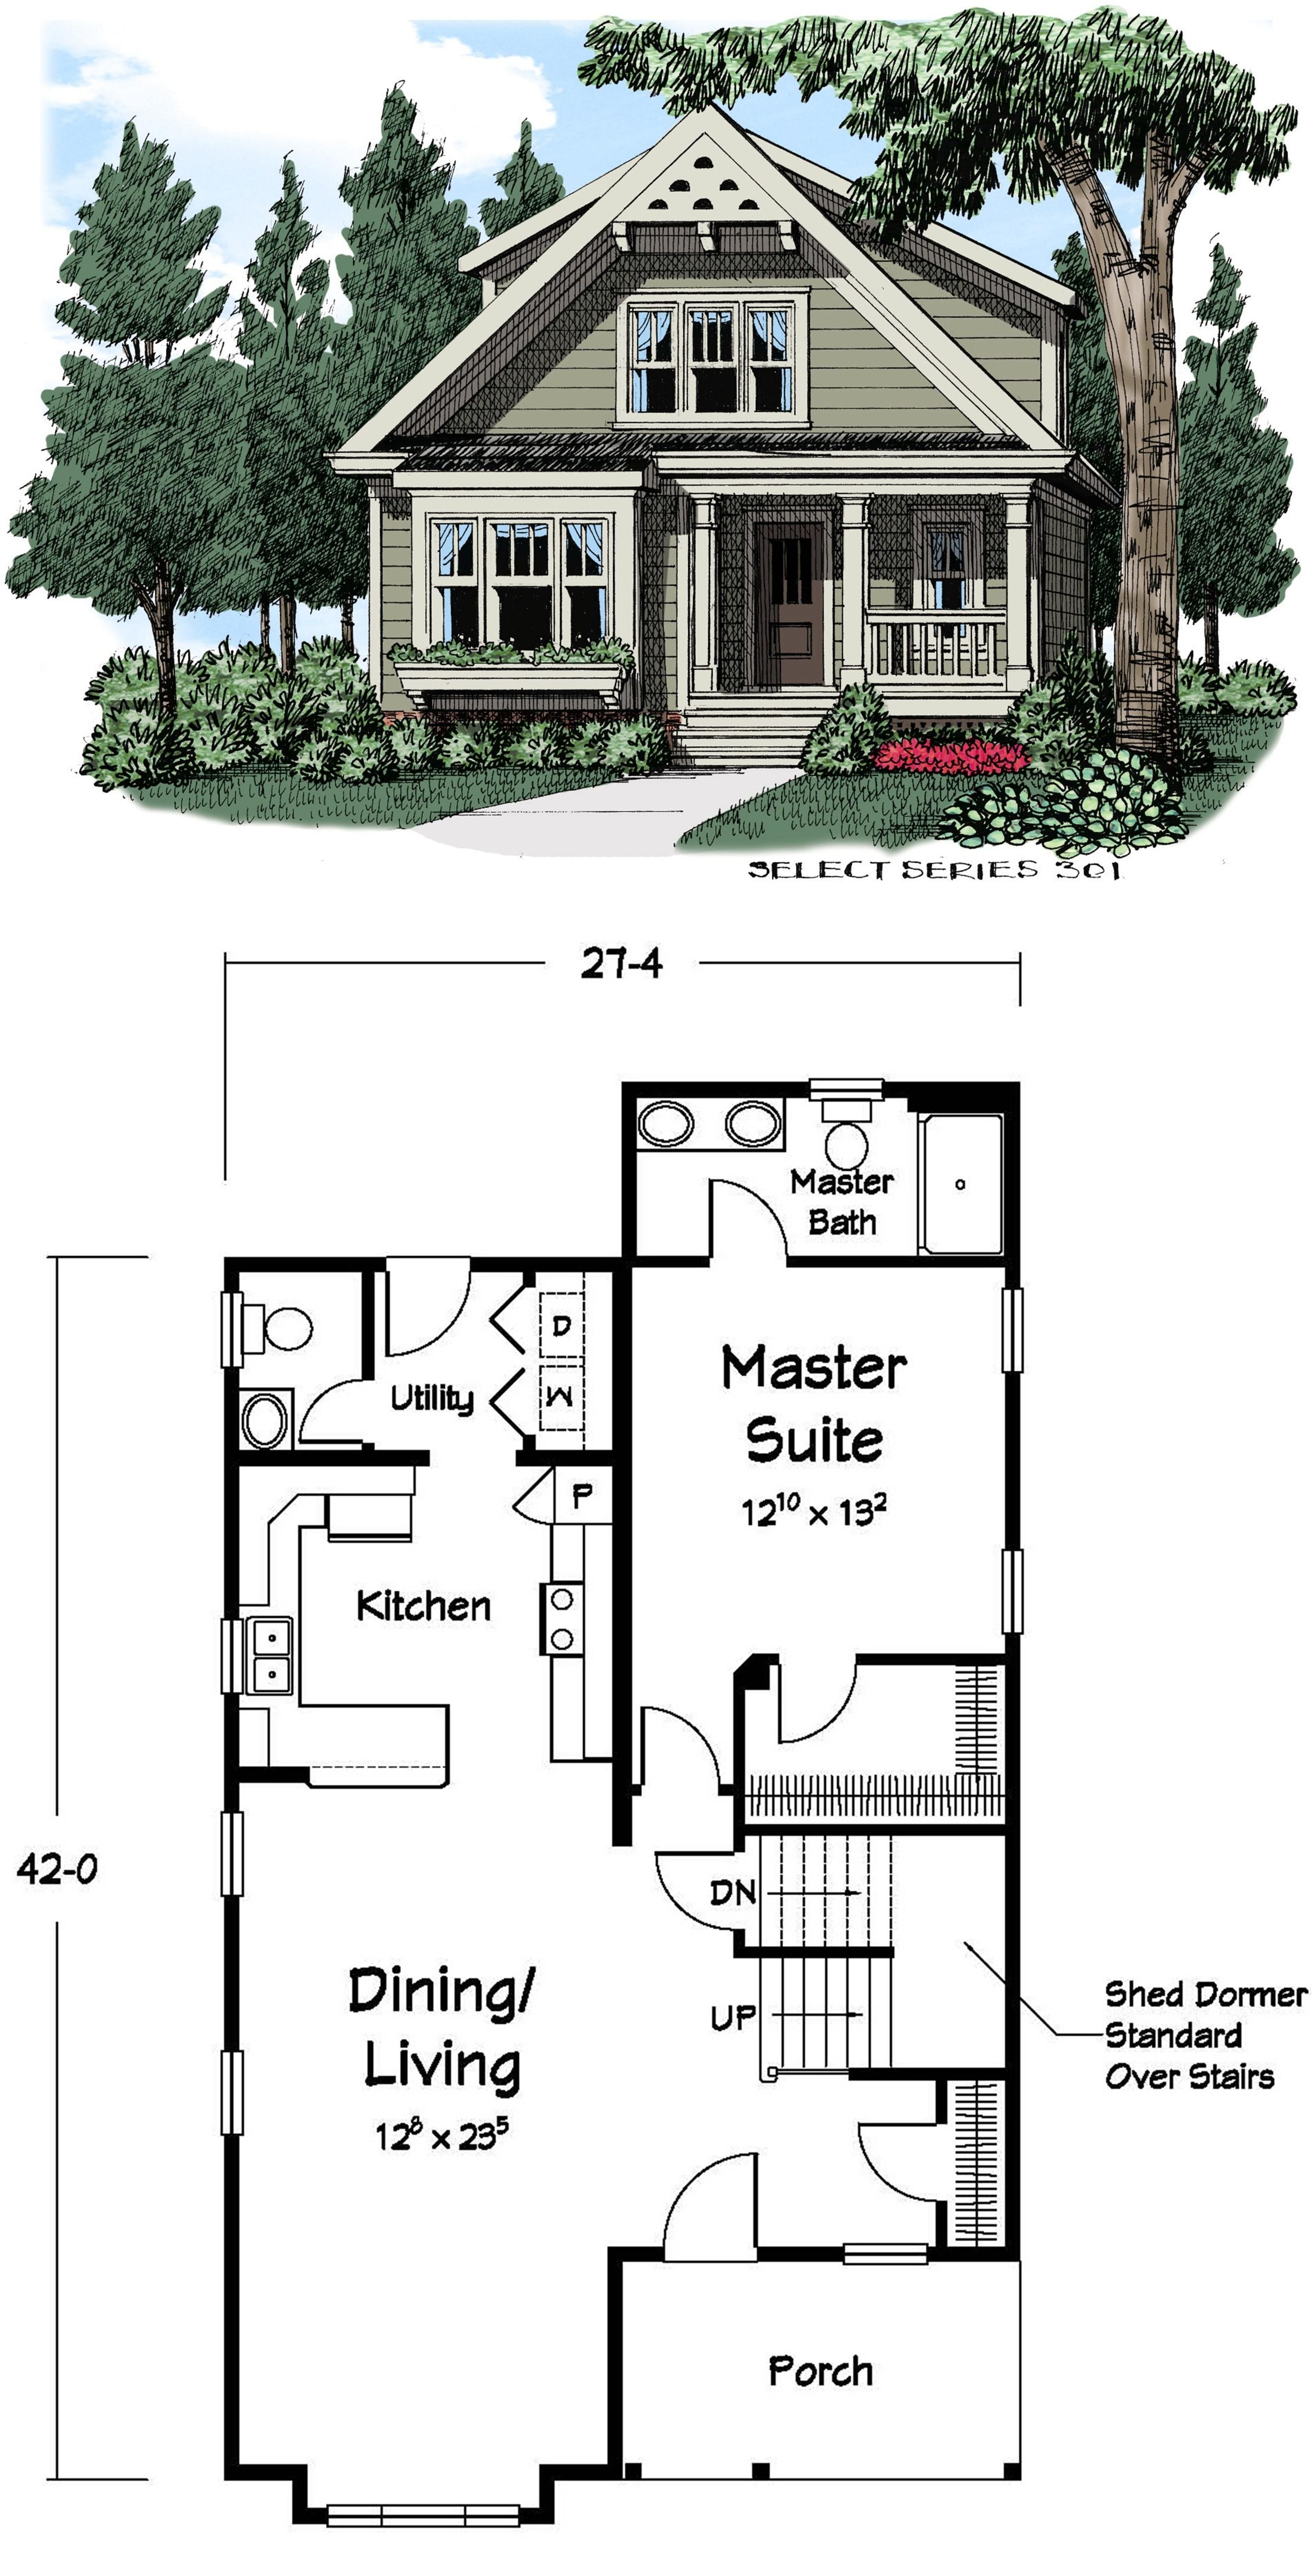 Perfect For Anyone Living On Their Own House Plans Tiny House Plans House Floor Plans